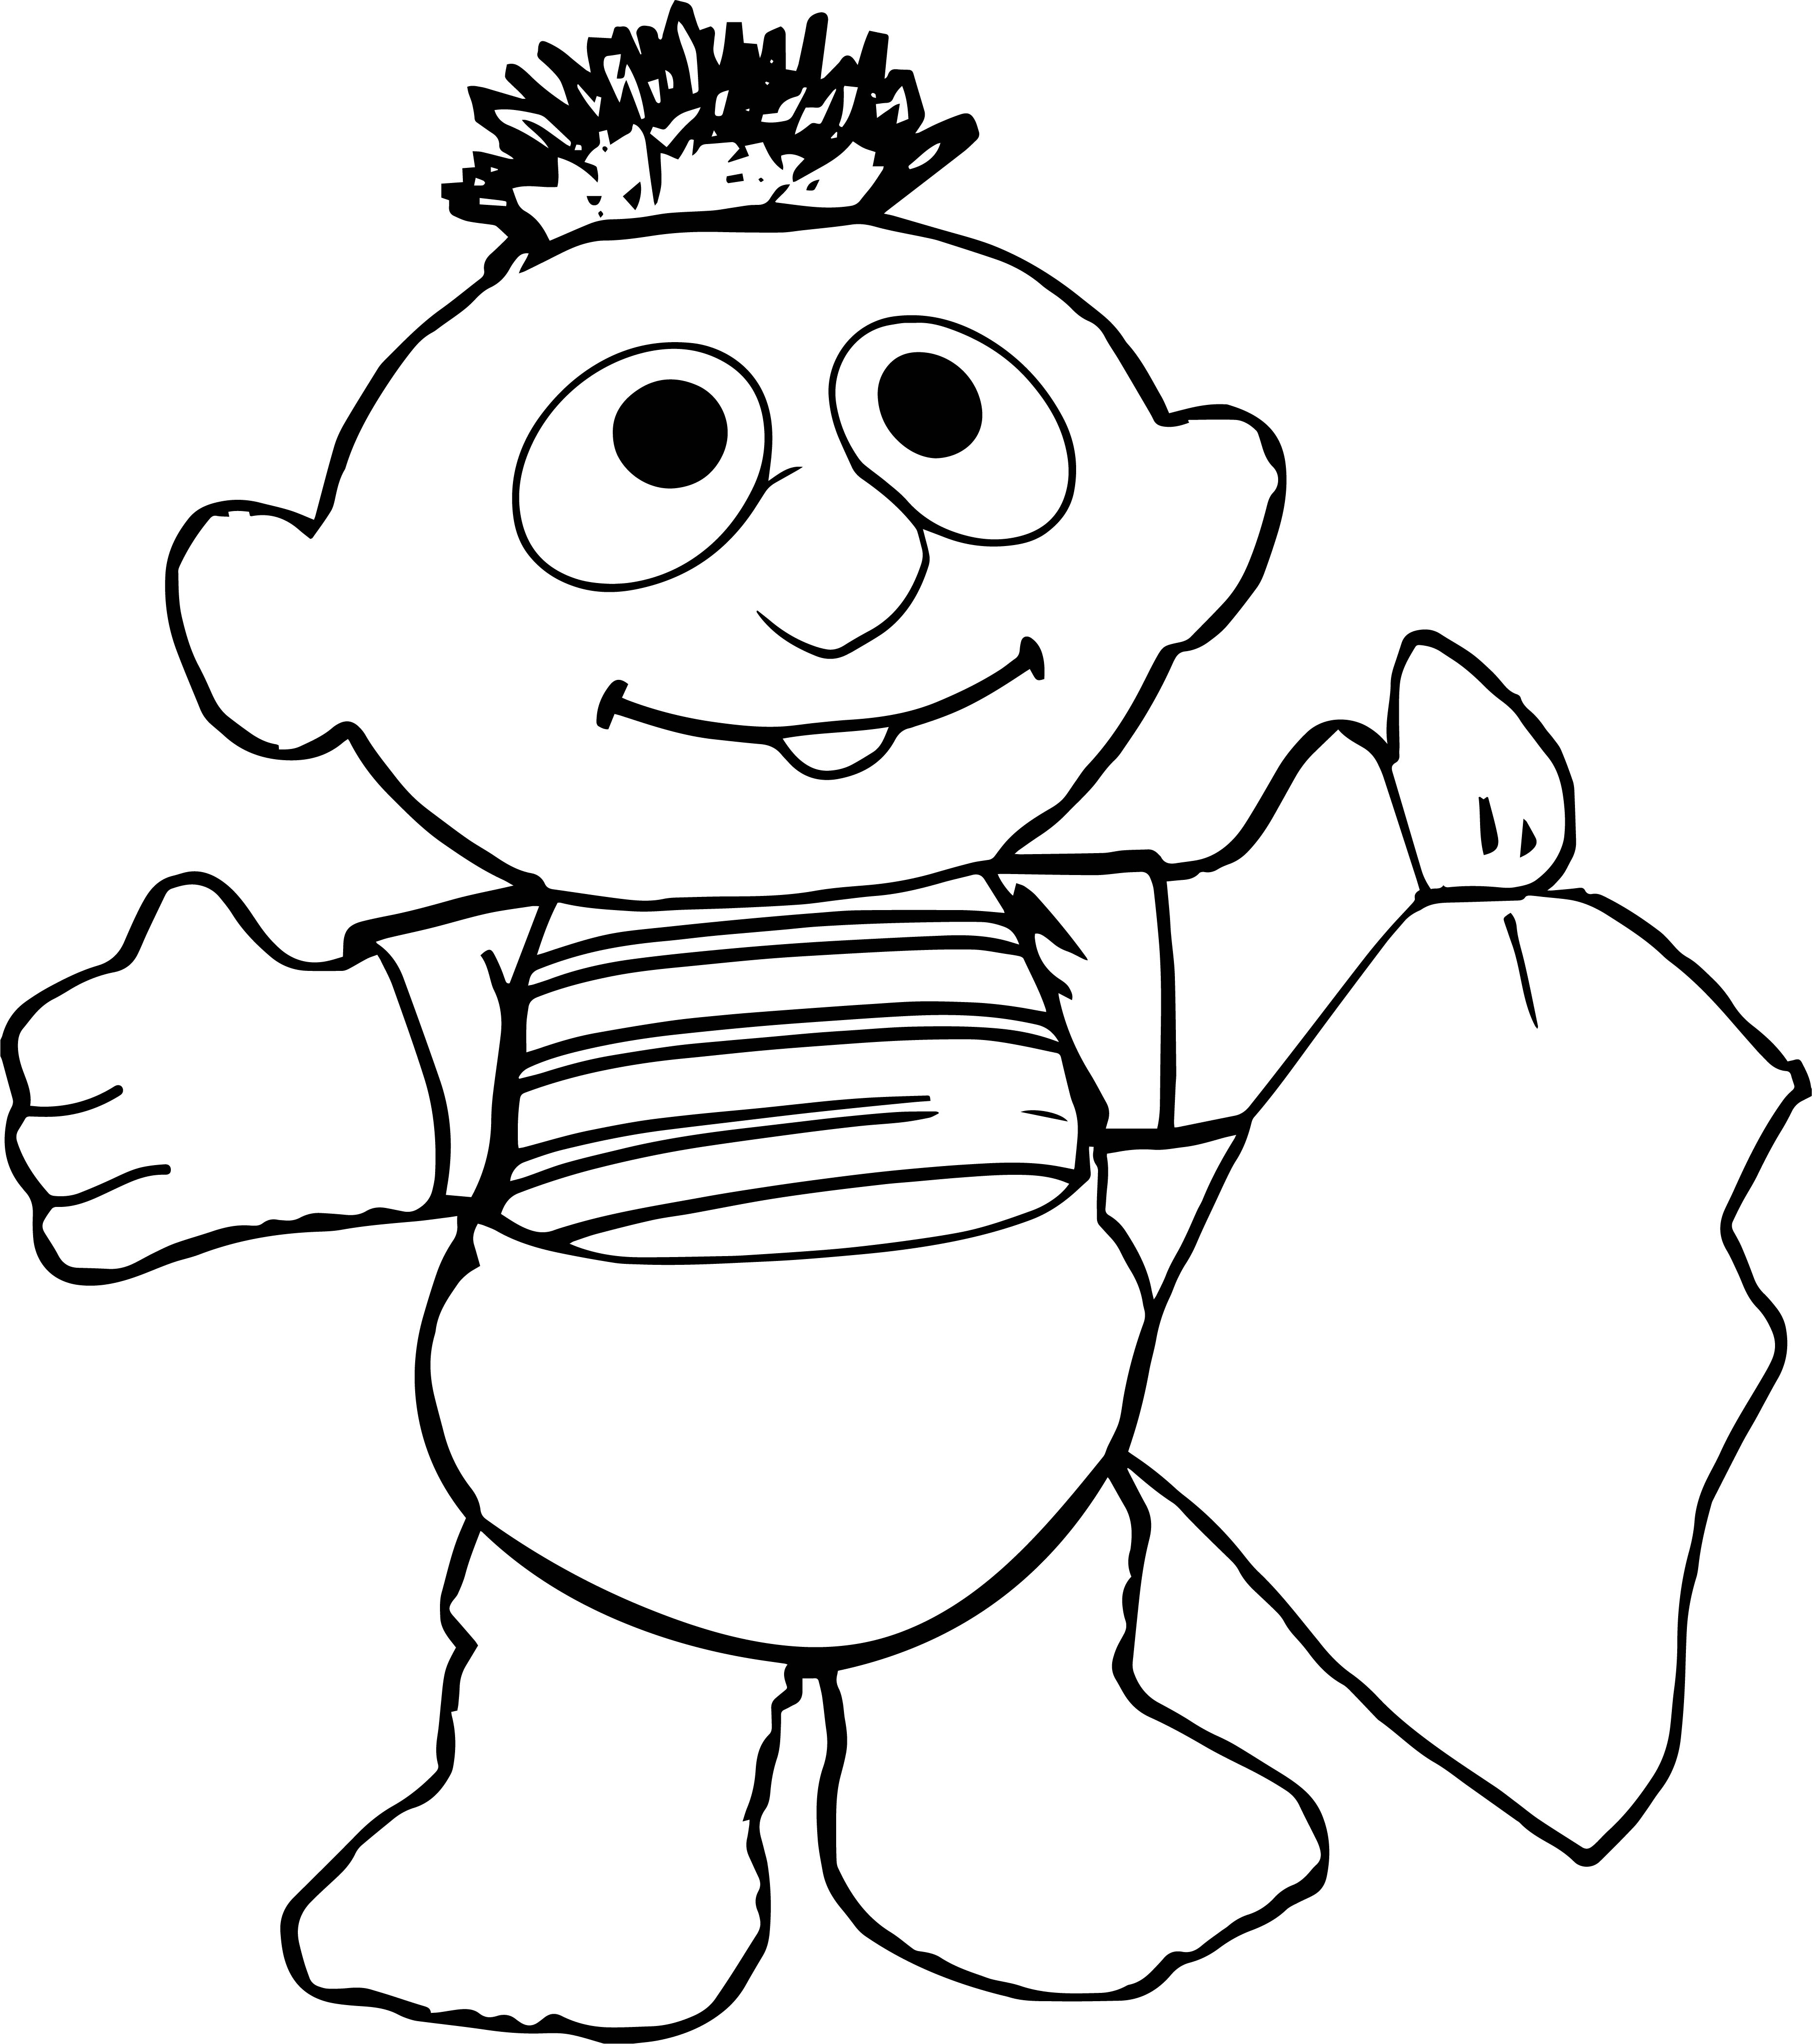 Baby sesame street coloring pages ~ Sesame Street Baby Coloring Page | Wecoloringpage.com